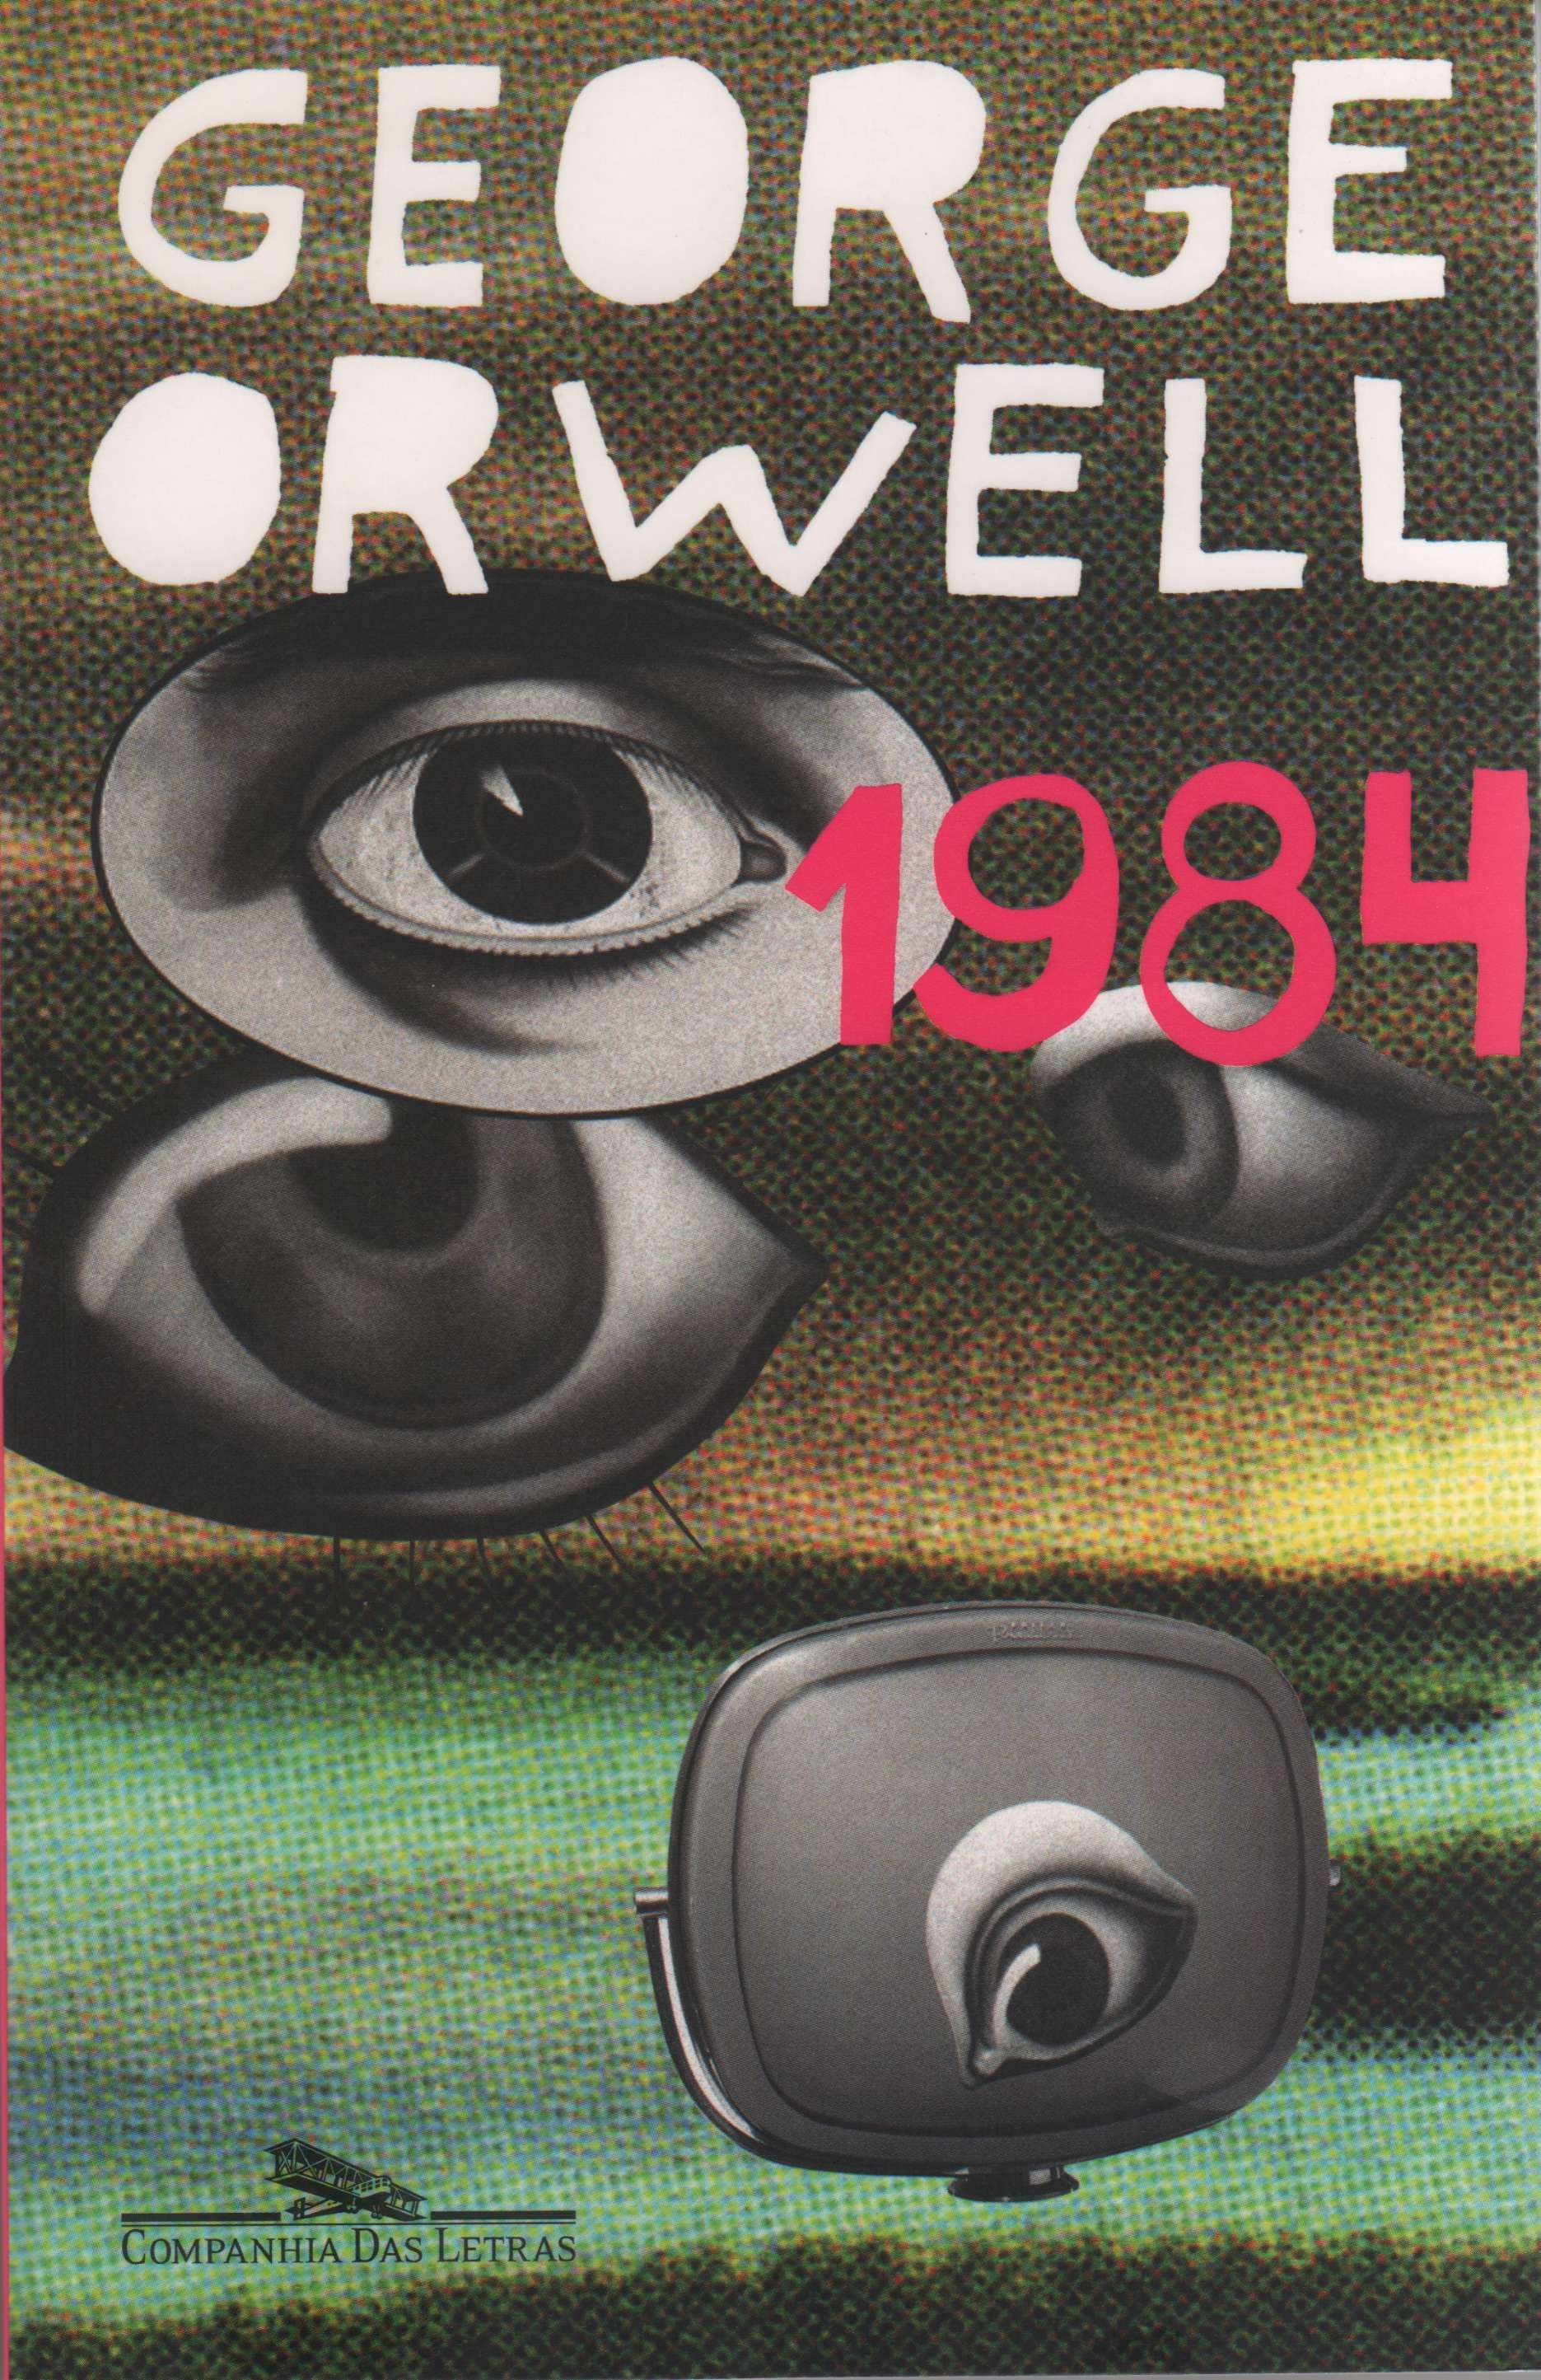 1984 by george orwell books books books pinterest book book 1984 by george orwell fandeluxe